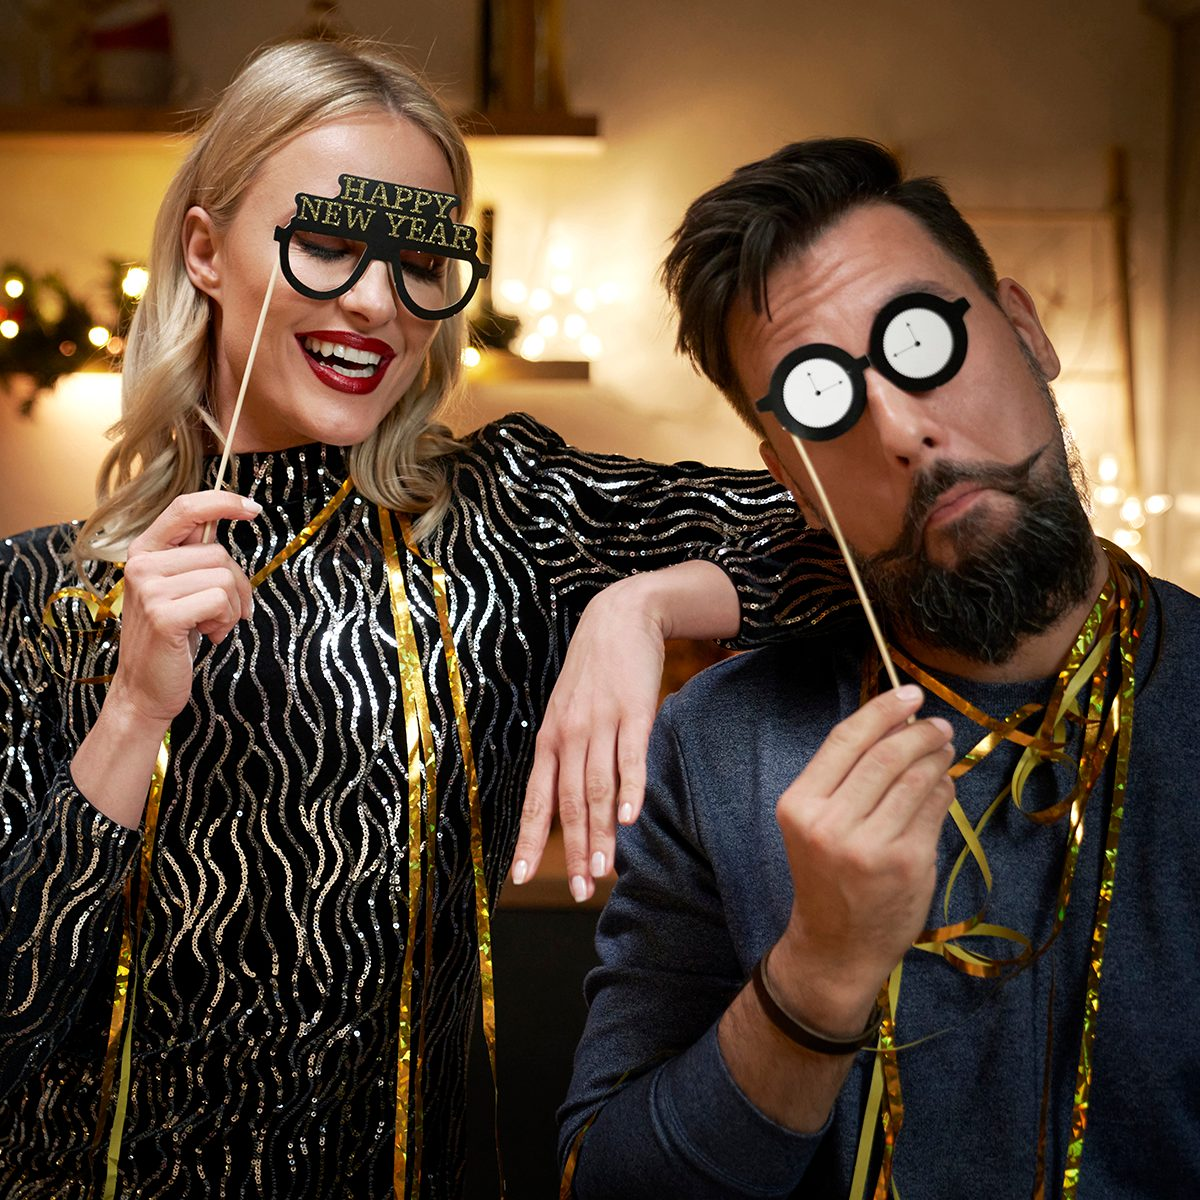 Couple have fun during making New Year's Eve photo booths